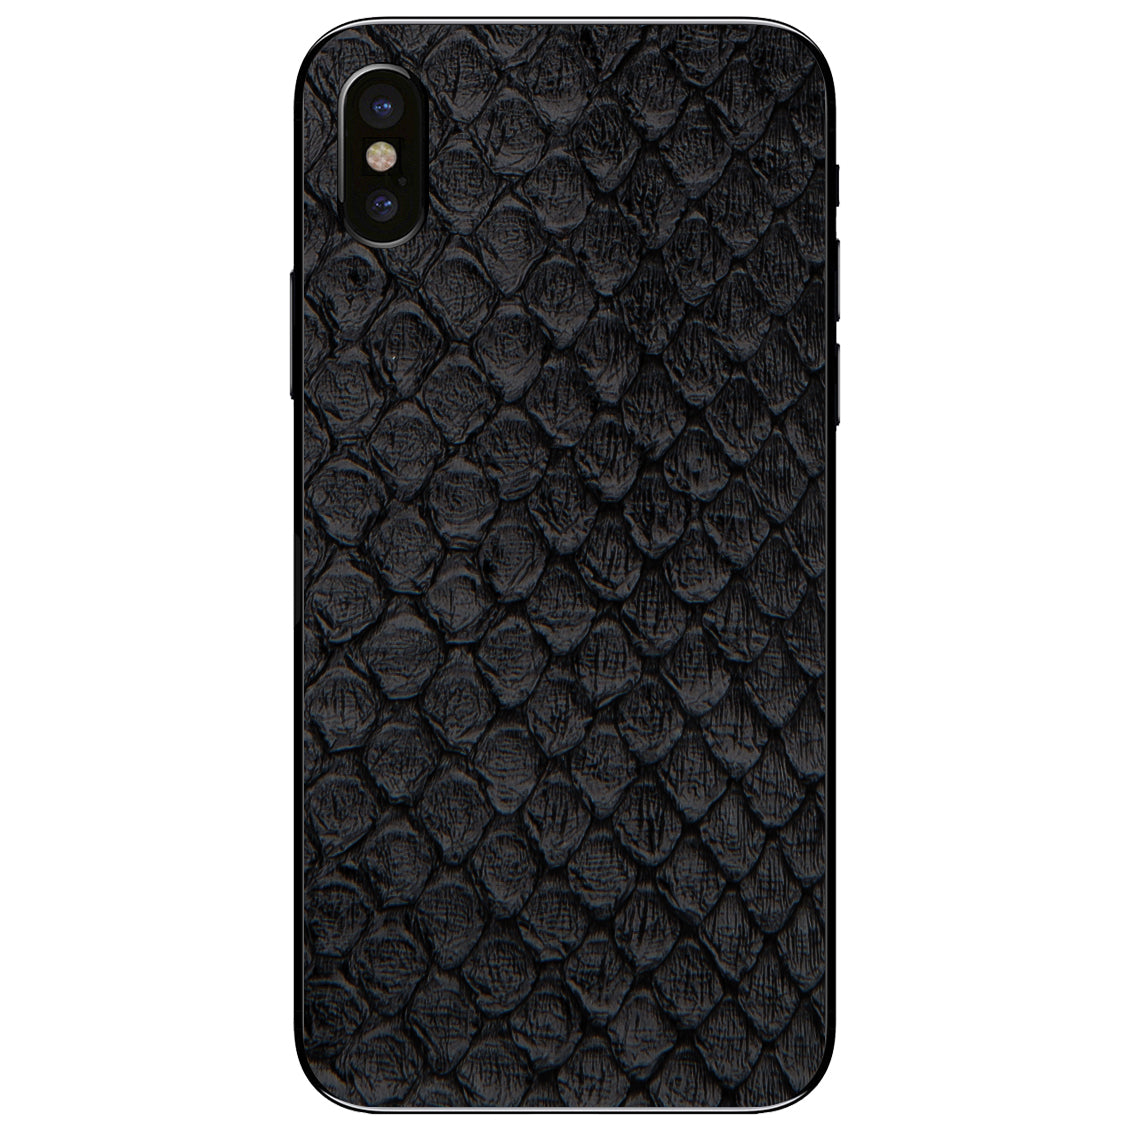 Black Anaconda iPhone XS Leather Skin